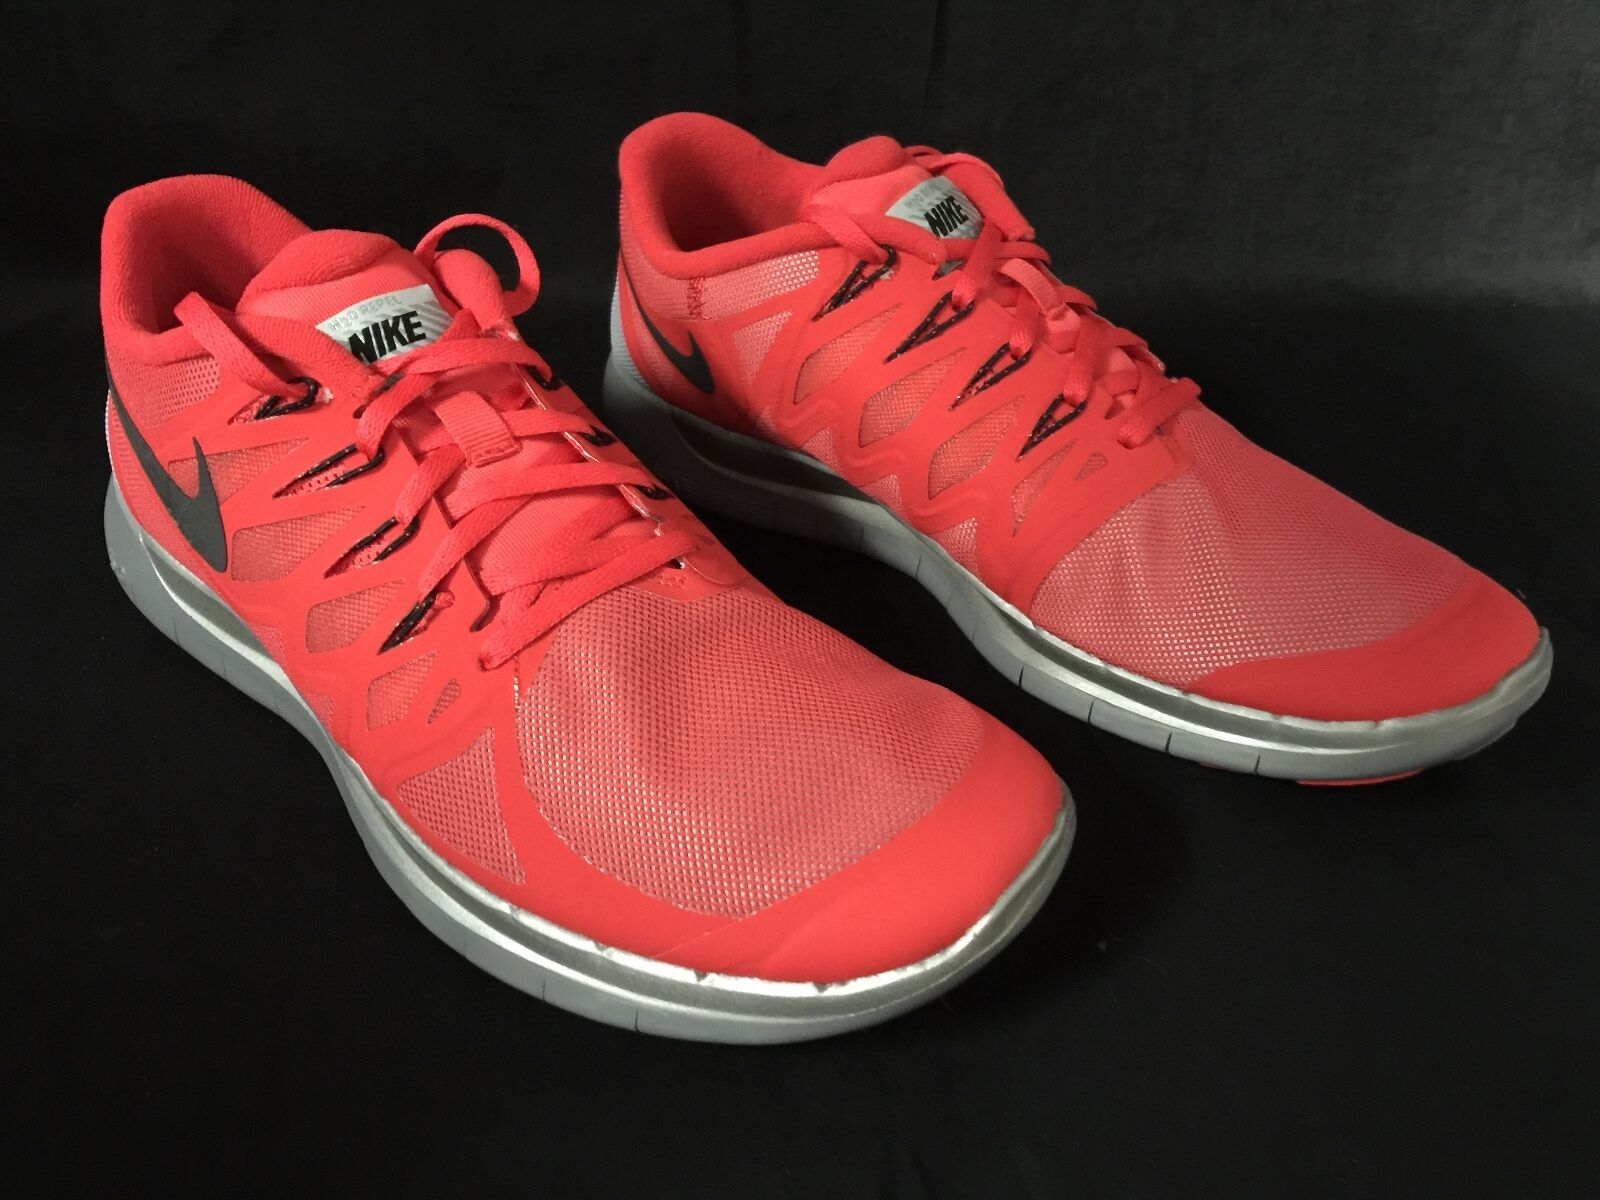 low-cost MEN S NIKE FREE 5.0 FLASH Running Shoes 685168-600 ... d7d1498ad